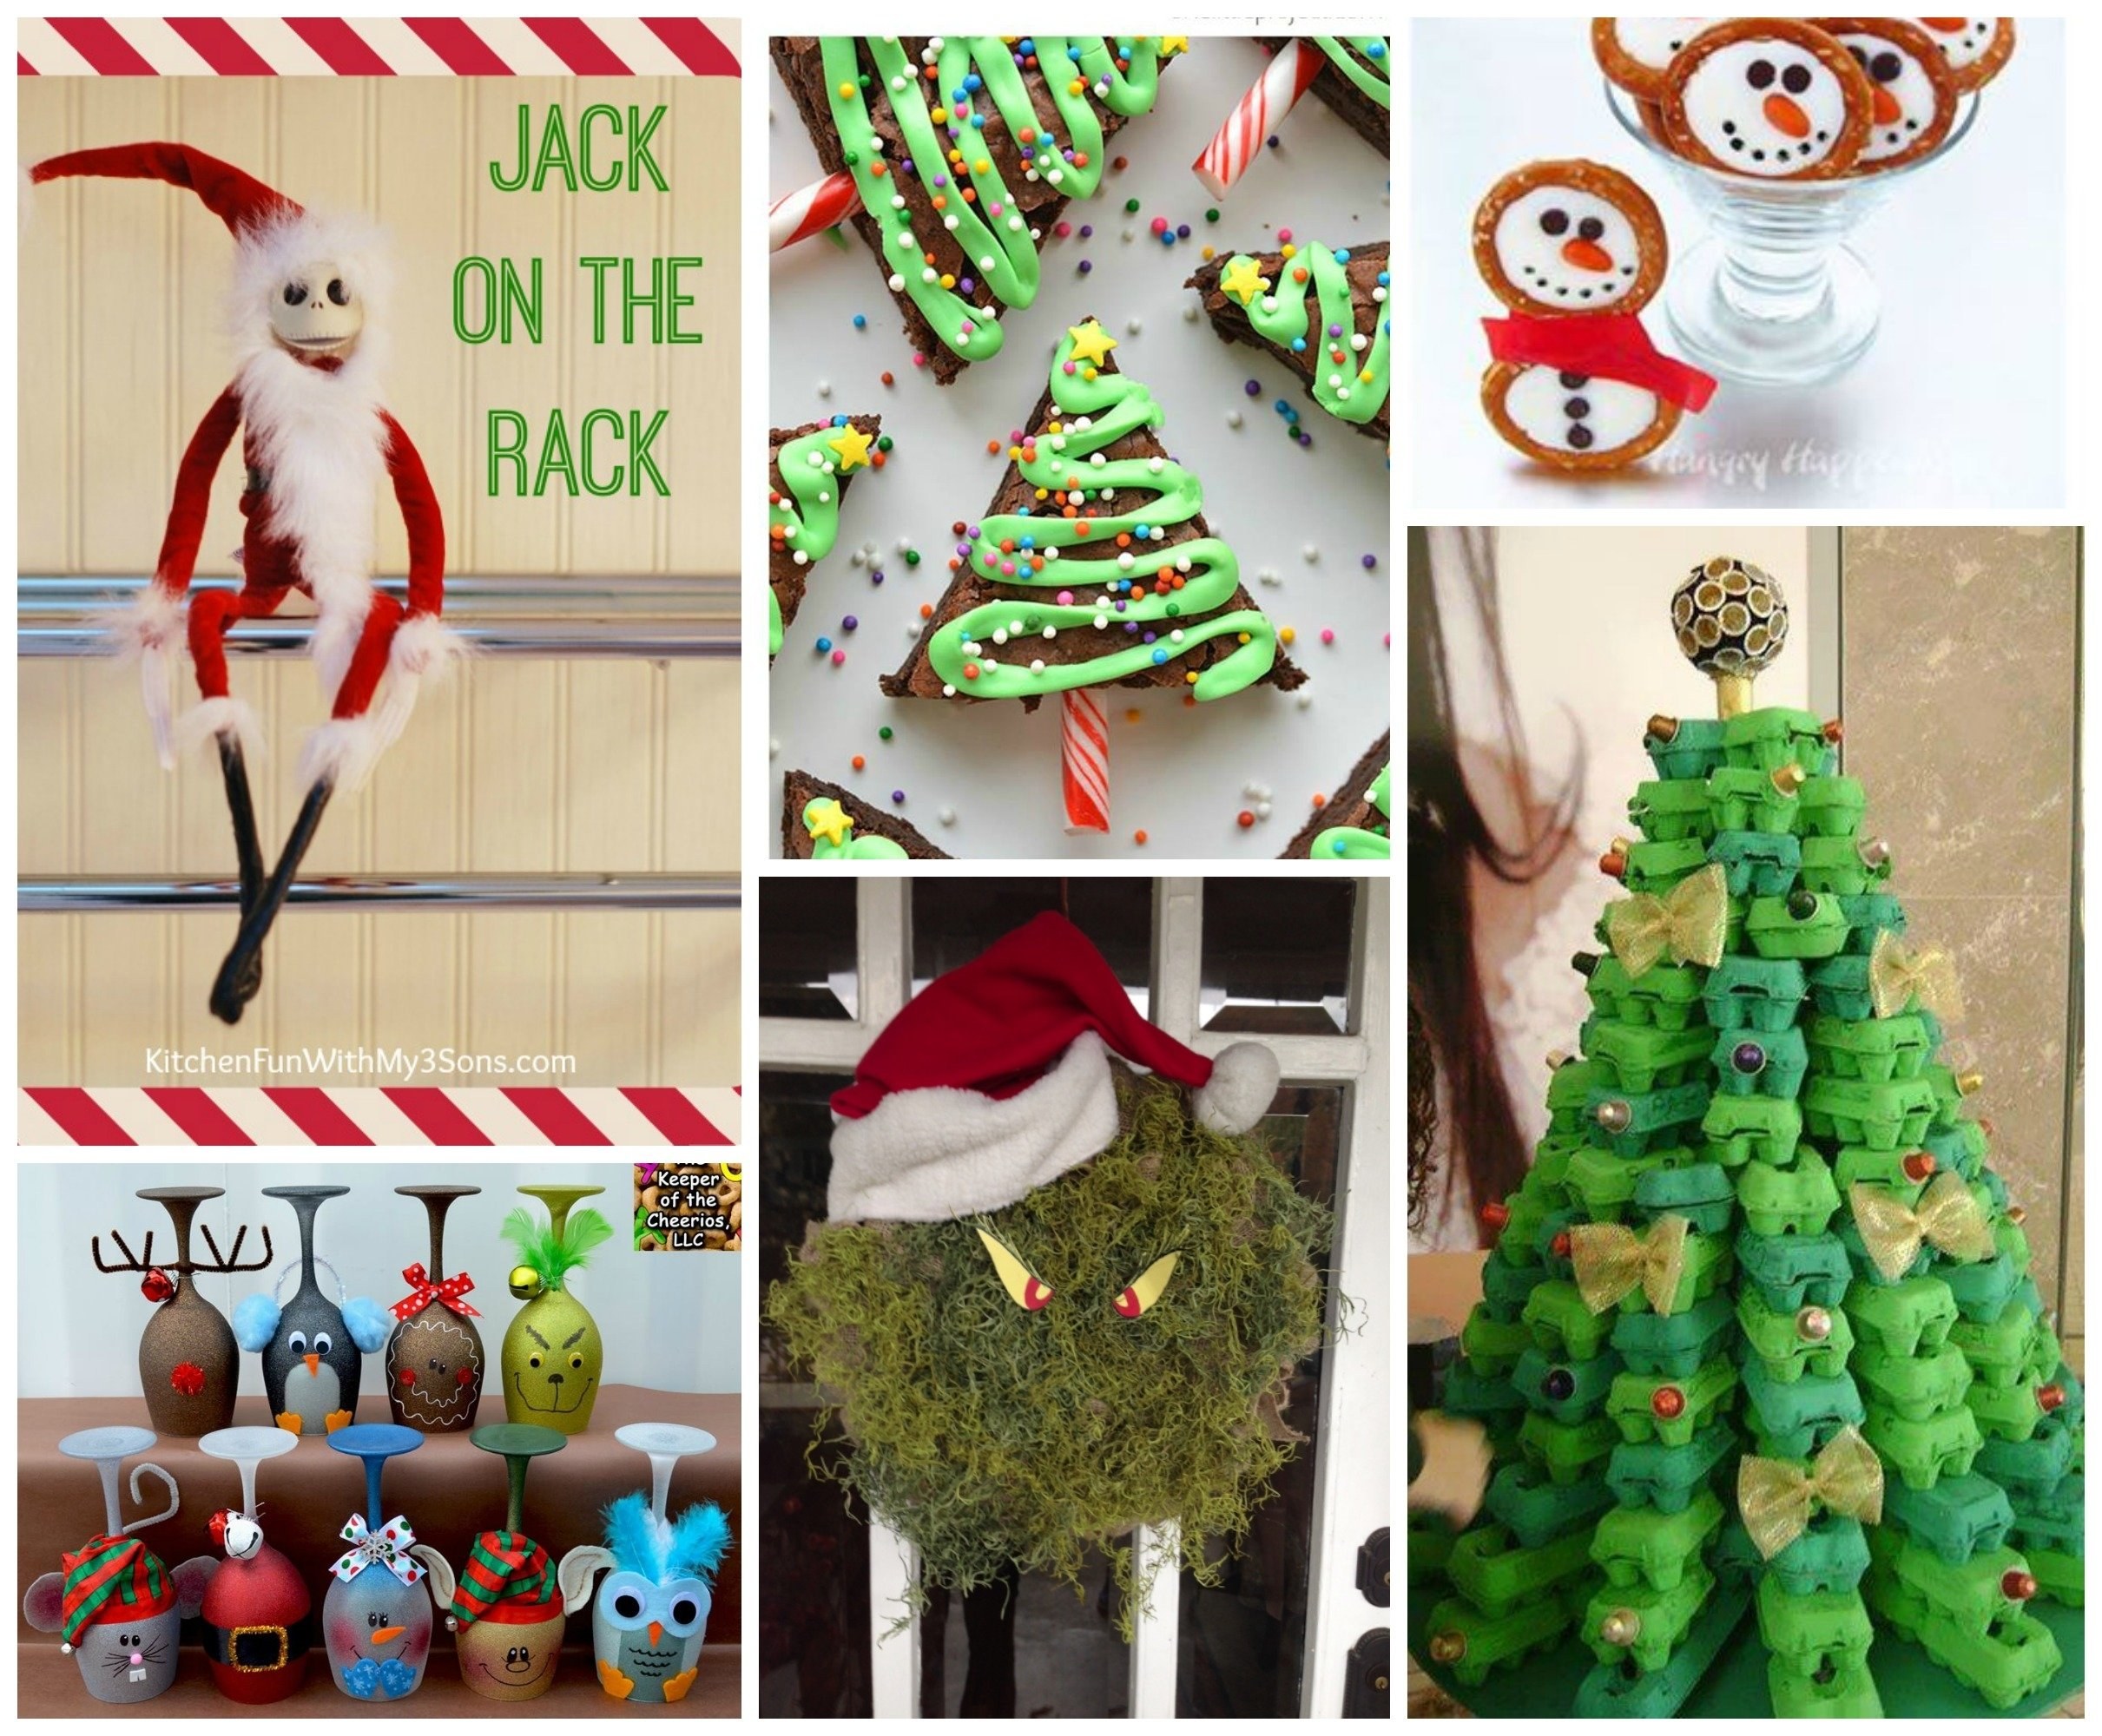 10 Fabulous Christmas Crafts Ideas For Adults fun finds friday with christmas fun food craft ideas kitchen